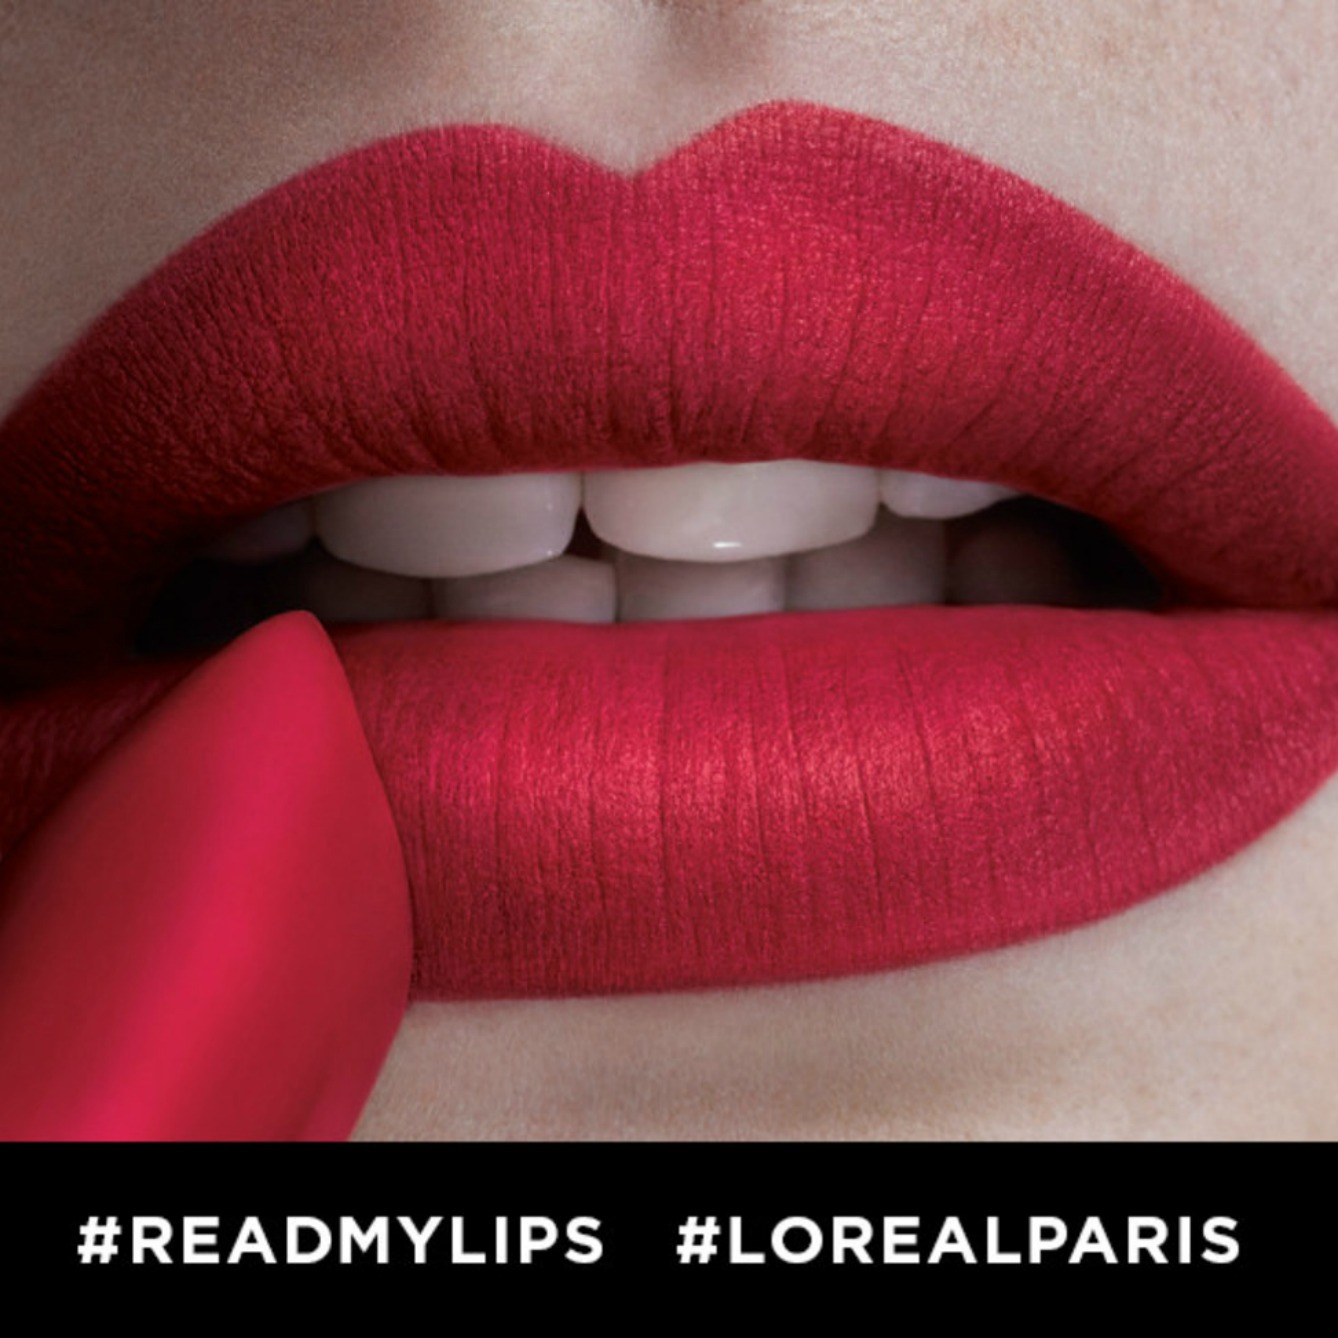 L'Oréal Wants to See Your Lipstick Selfies